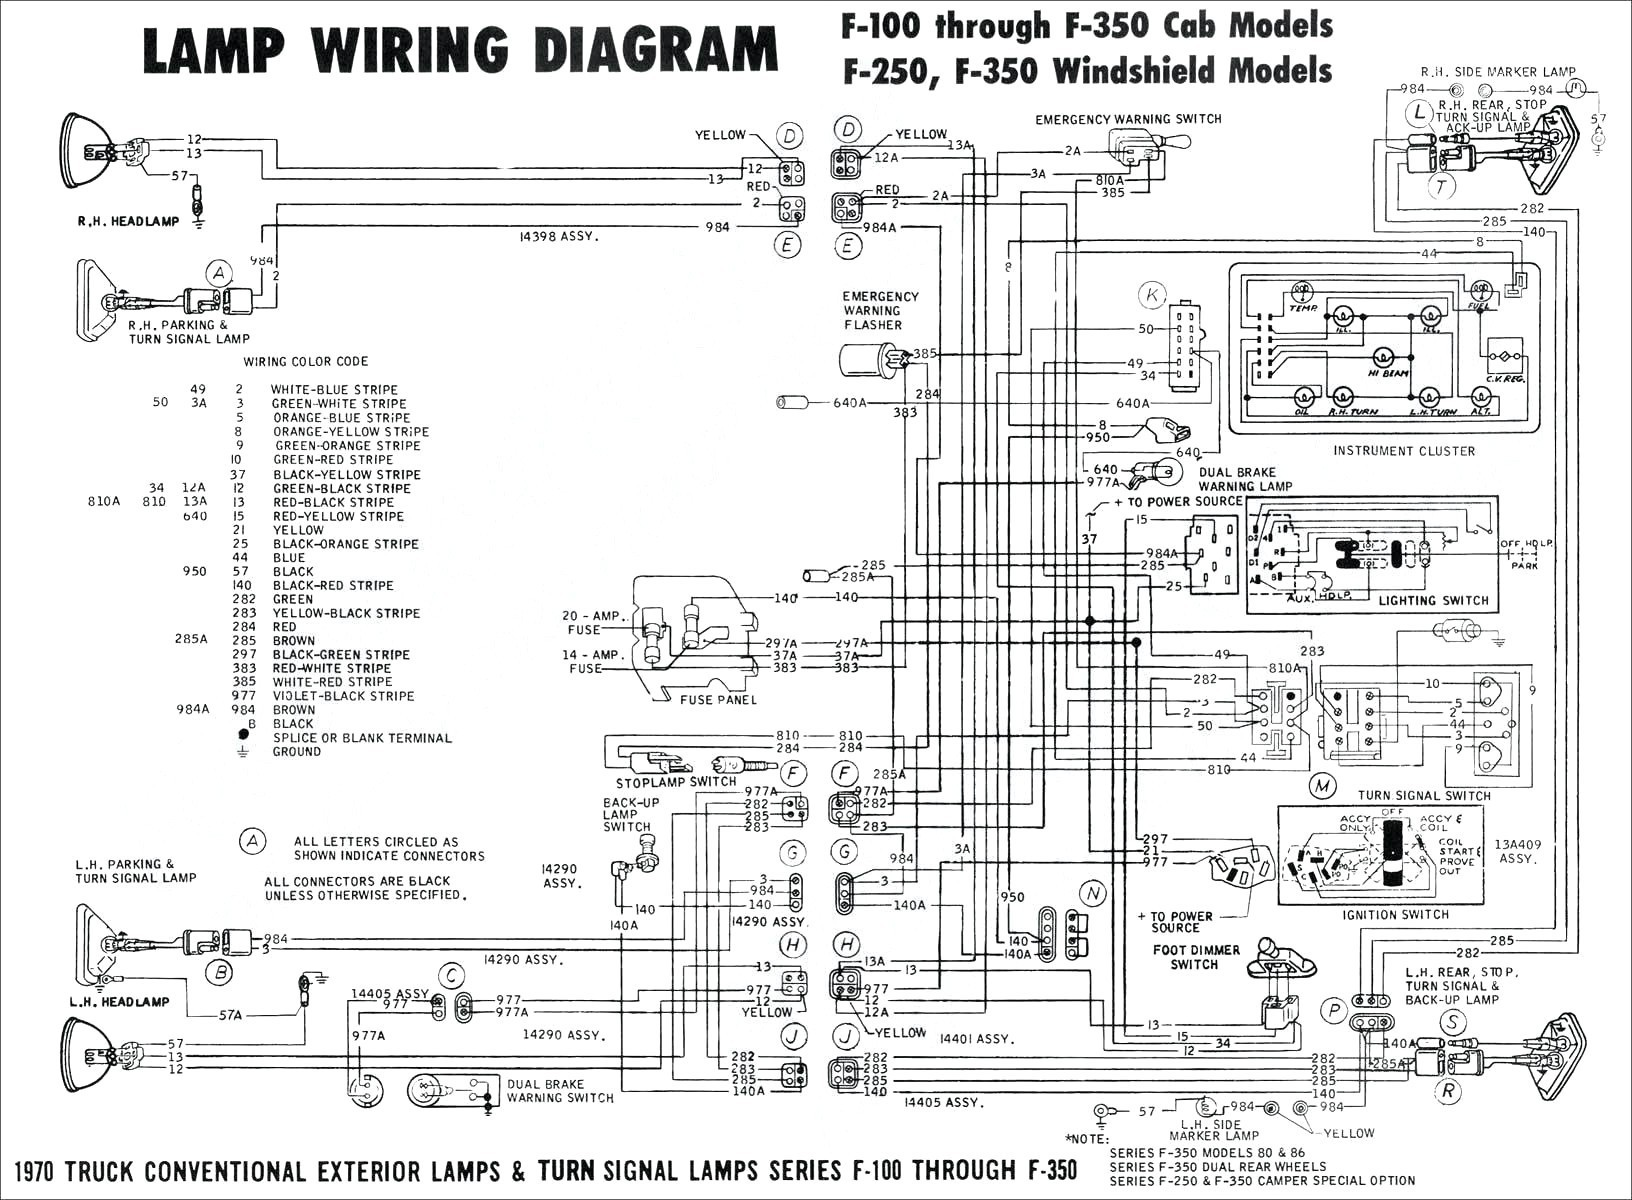 2005 Grand Cherokee Fuse Diagram Under Dash Car Wiring Diagrams 1993 Jeep Box Dodge Ram 3500 Schematic Rh Ogmconsulting Co 2003